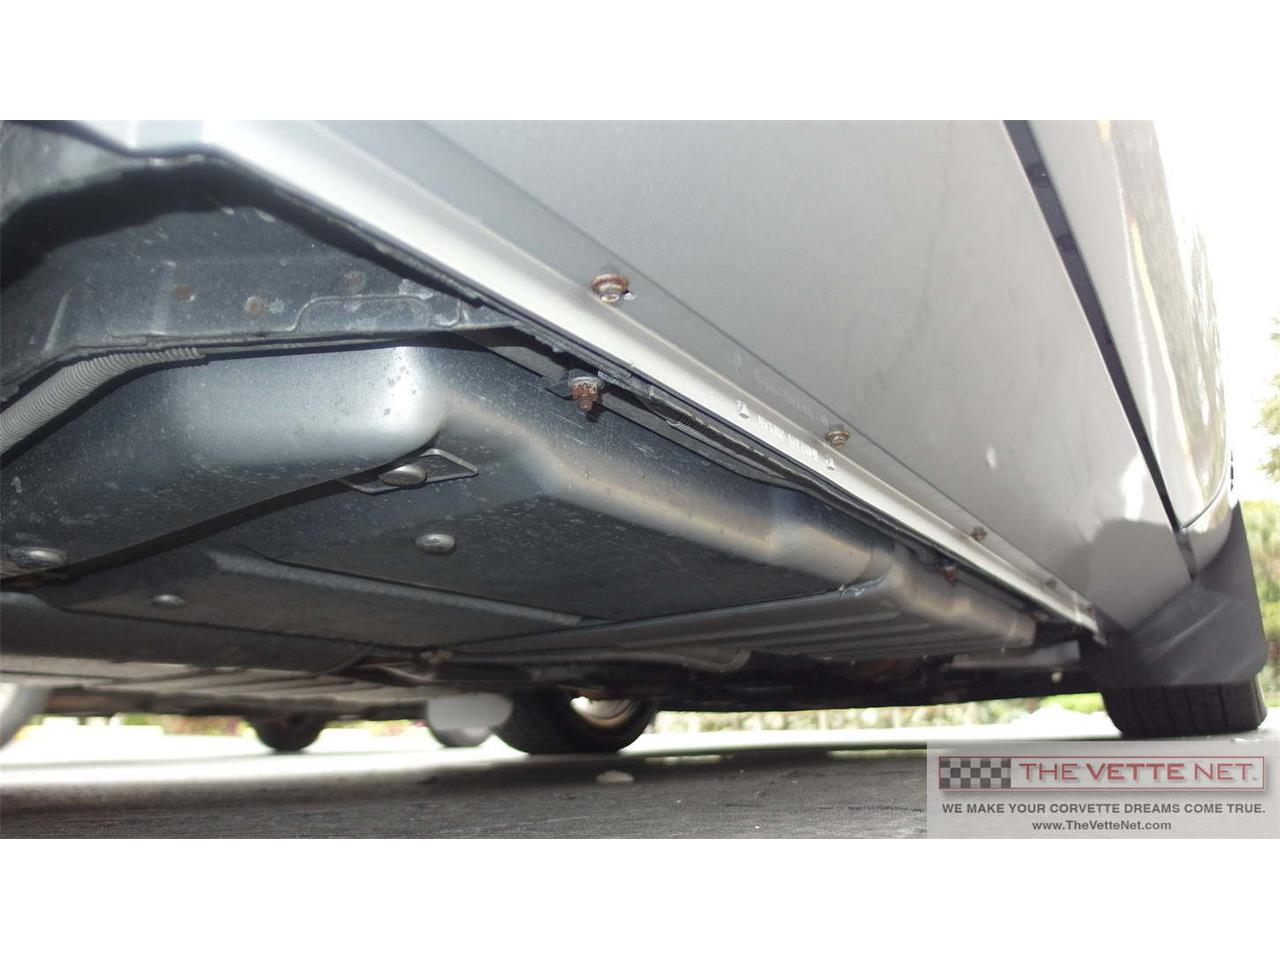 Large Picture of 1996 Chevrolet Corvette located in Florida - $19,990.00 Offered by The Vette Net - IVON